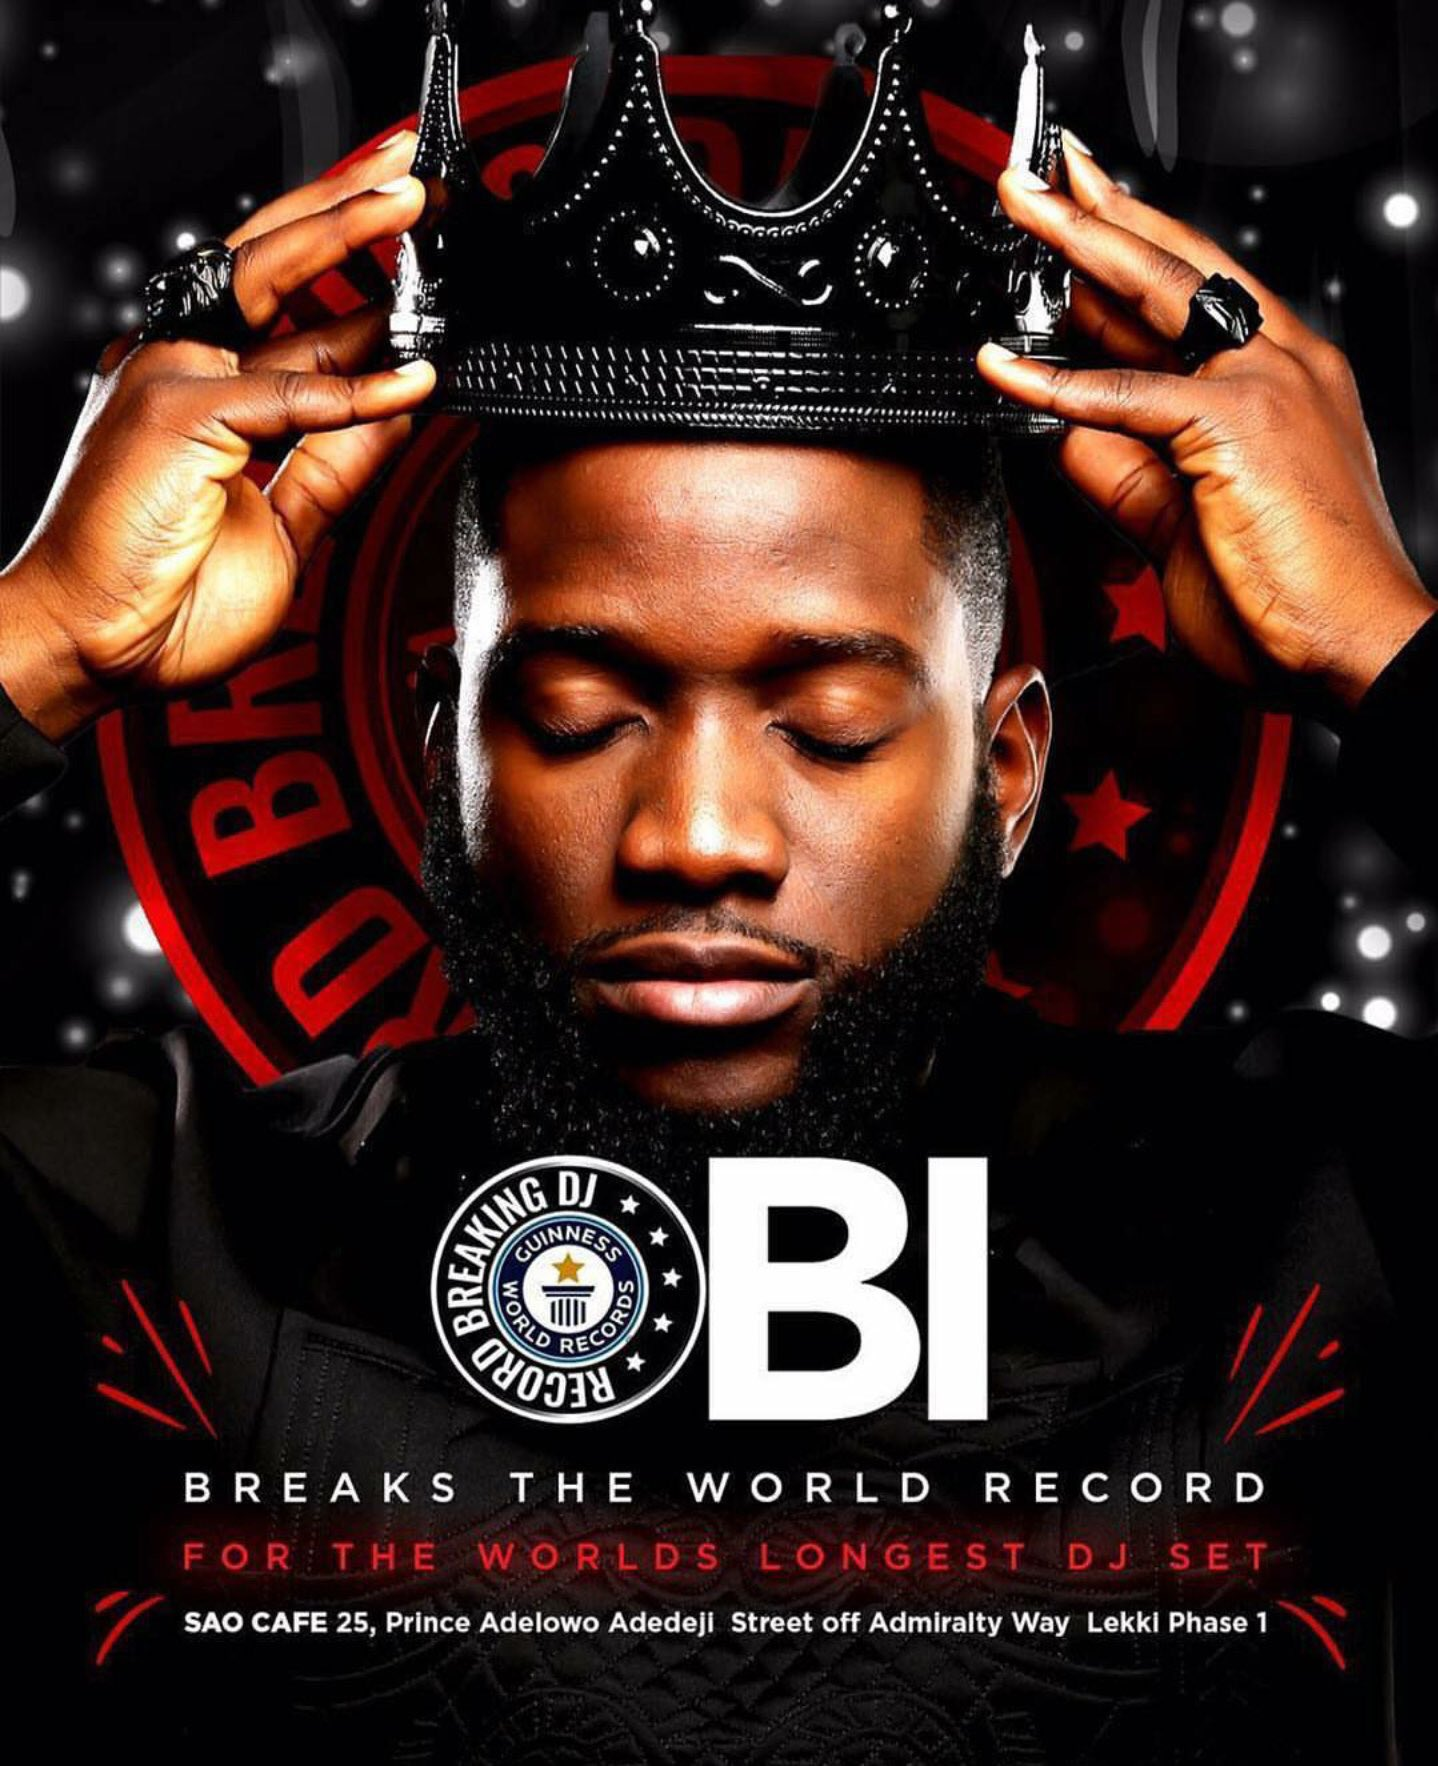 #DJObiWorldRecord : Nigerian Disc Jockey DJ Obi Beat Guinness World Record for Longest DJ Set